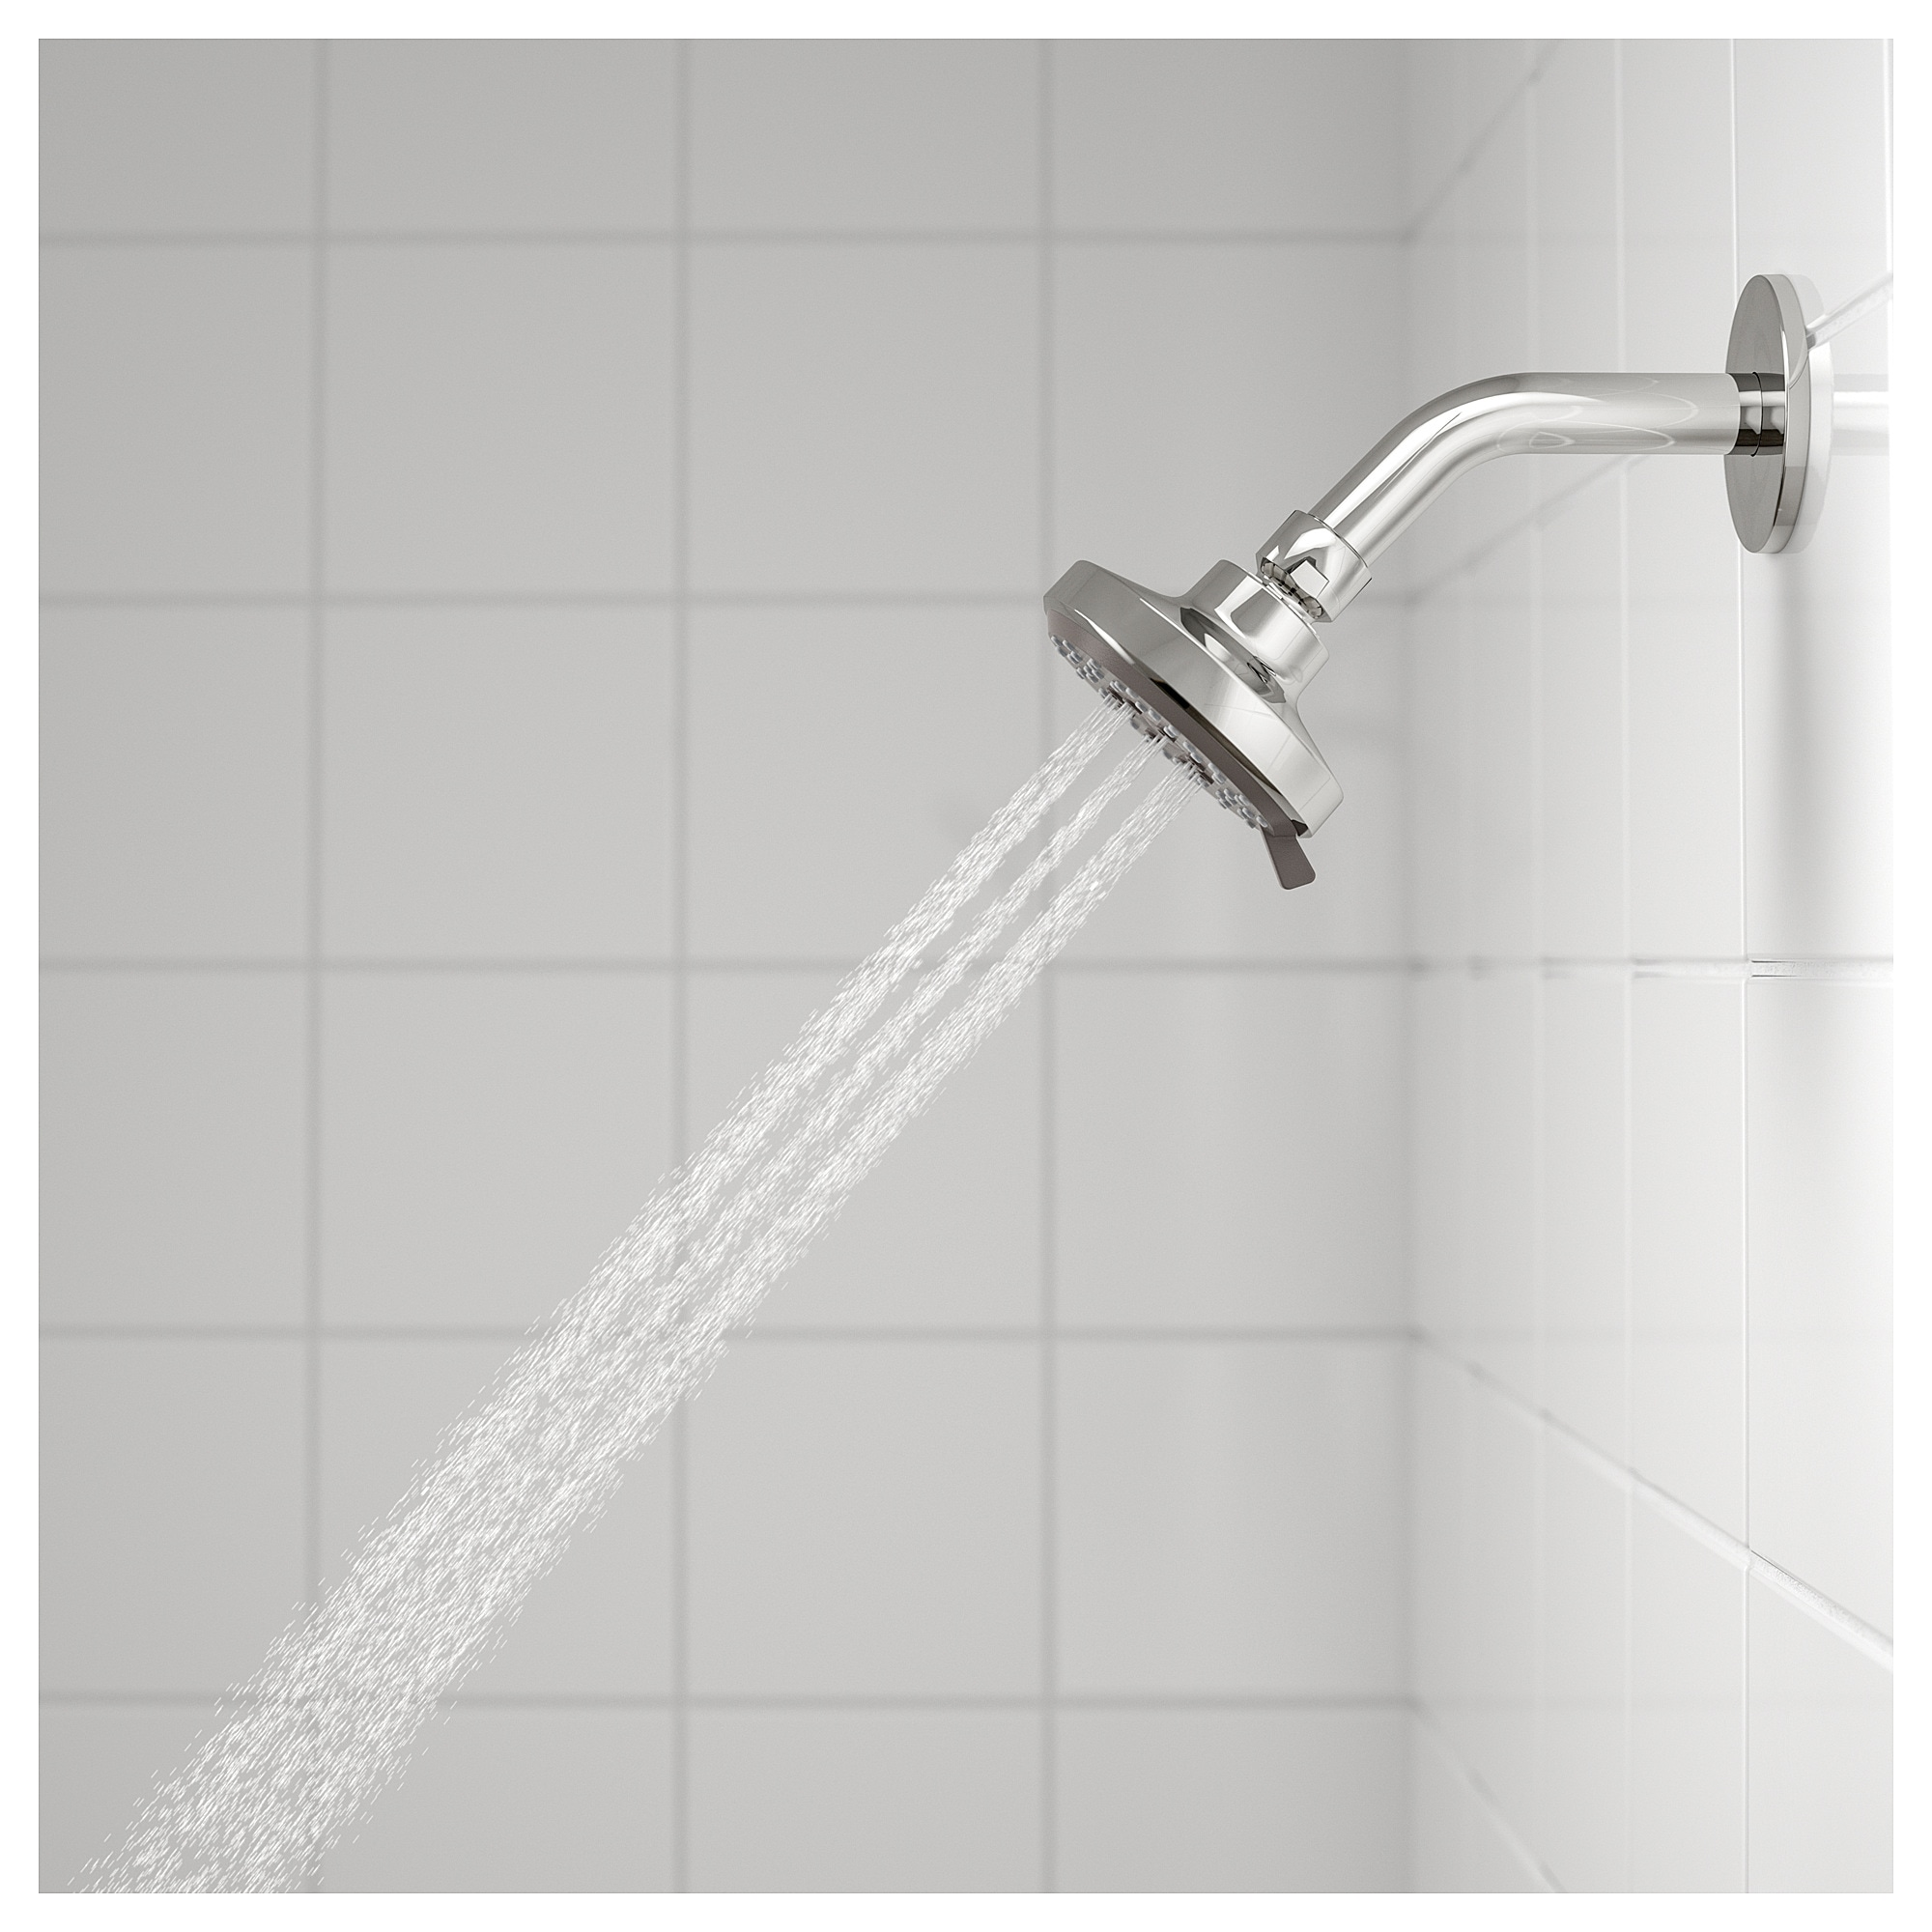 BROGRUND Showerhead with thermostatic faucet - IKEA